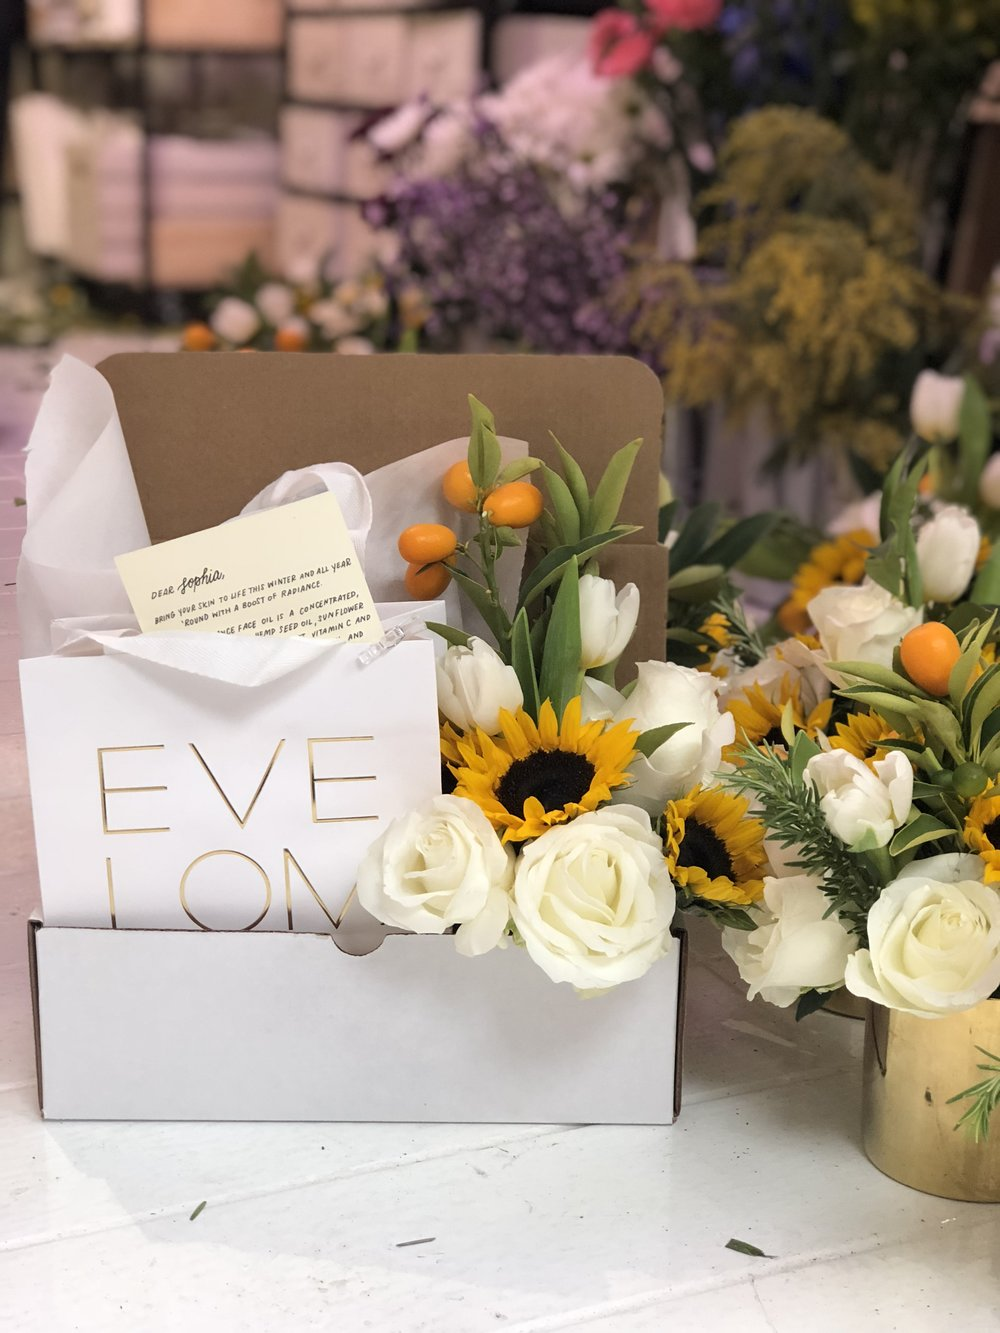 Eve Lom Gifting